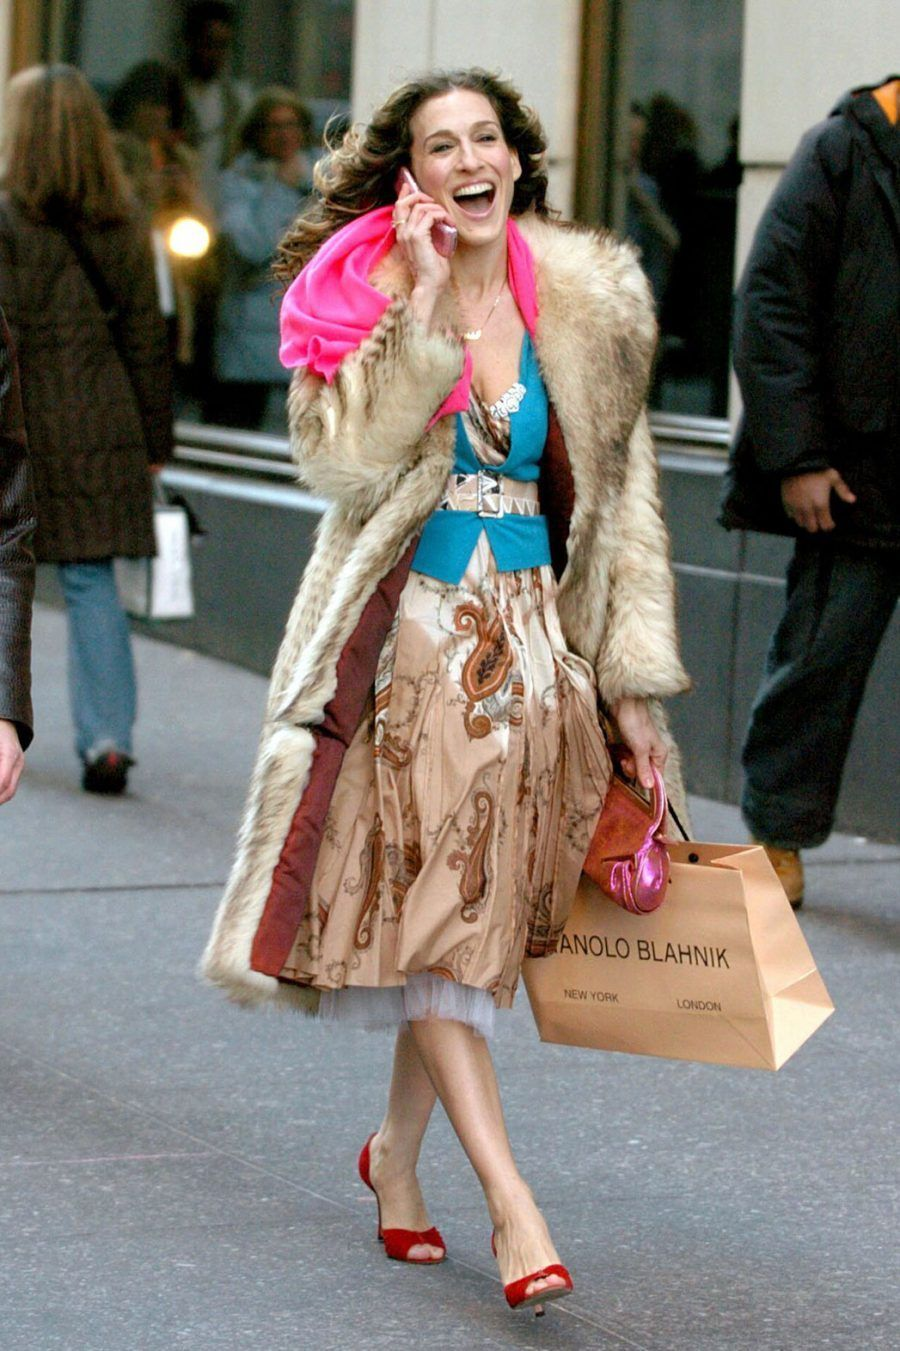 Mandatory Credit: Photo by CHARLES SYKES/REX Shutterstock (213199an) SARAH JESSICA PARKER FINAL DAY OF FILMING 'SEX AND THE CITY' TV SHOW, NEW YORK, AMERICA - 04 FEB 2004